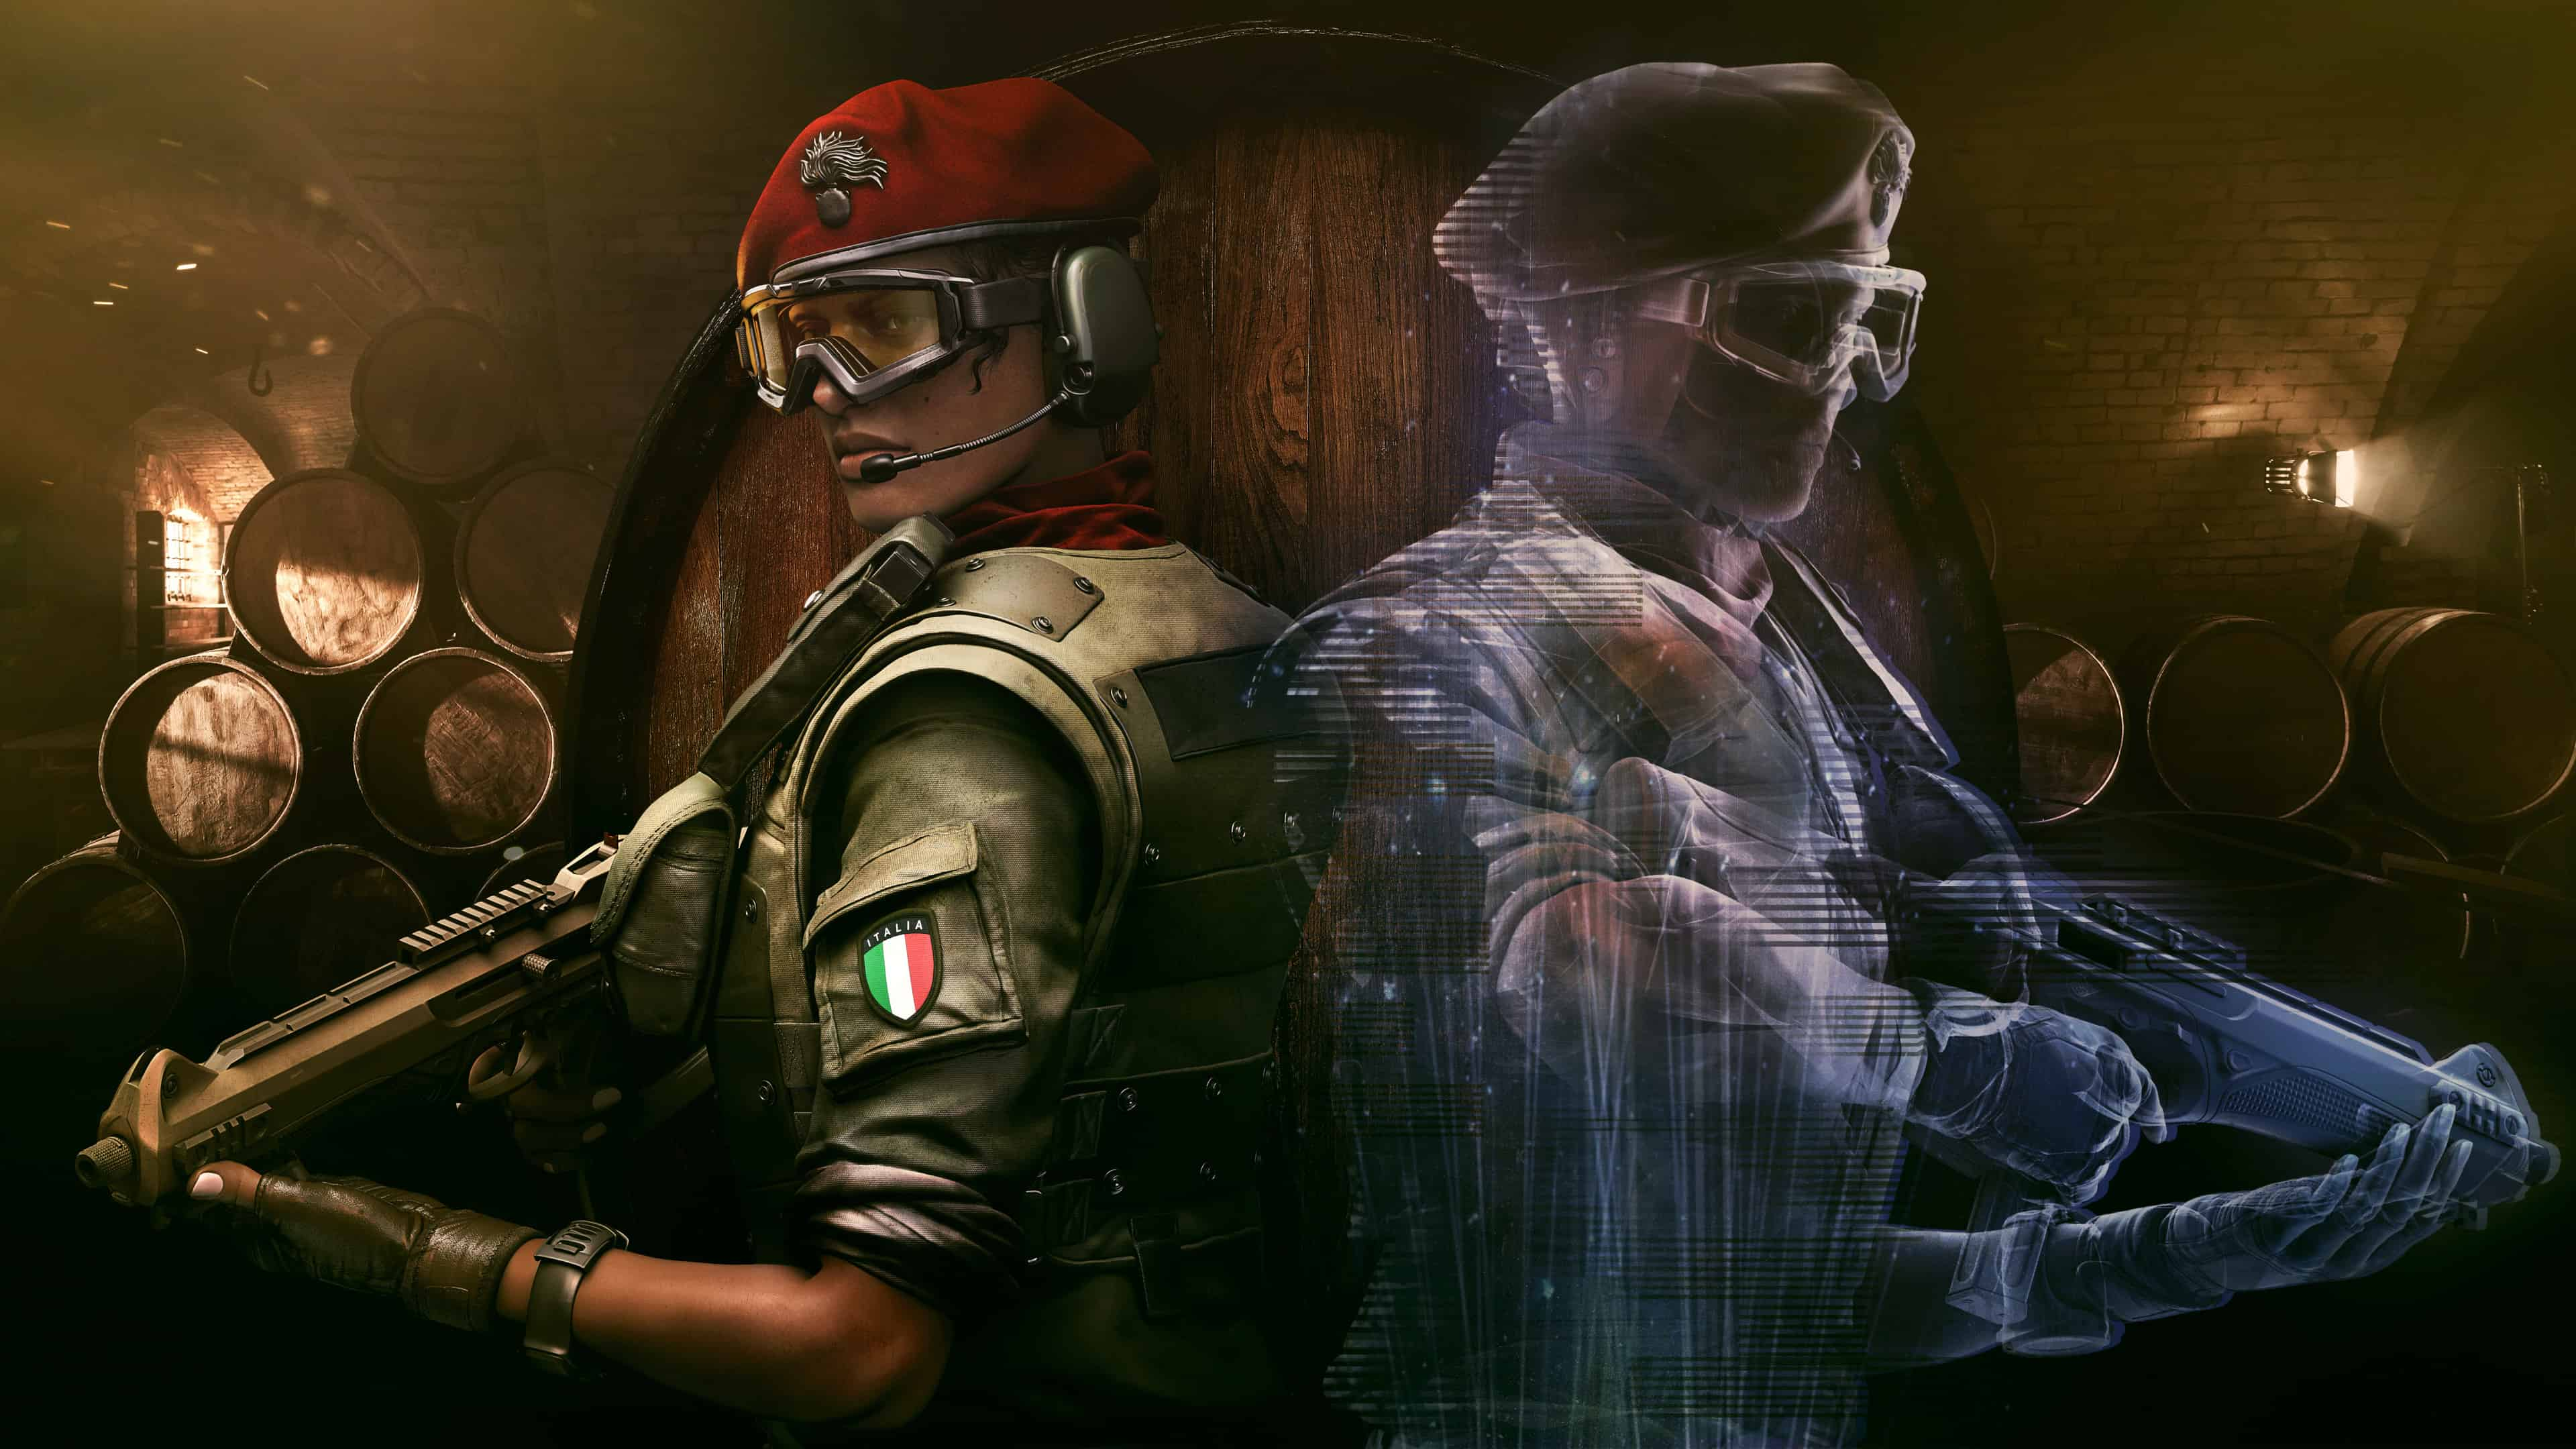 Related Images. tom clancys rainbow six siege thermite uhd 4k wallpaper